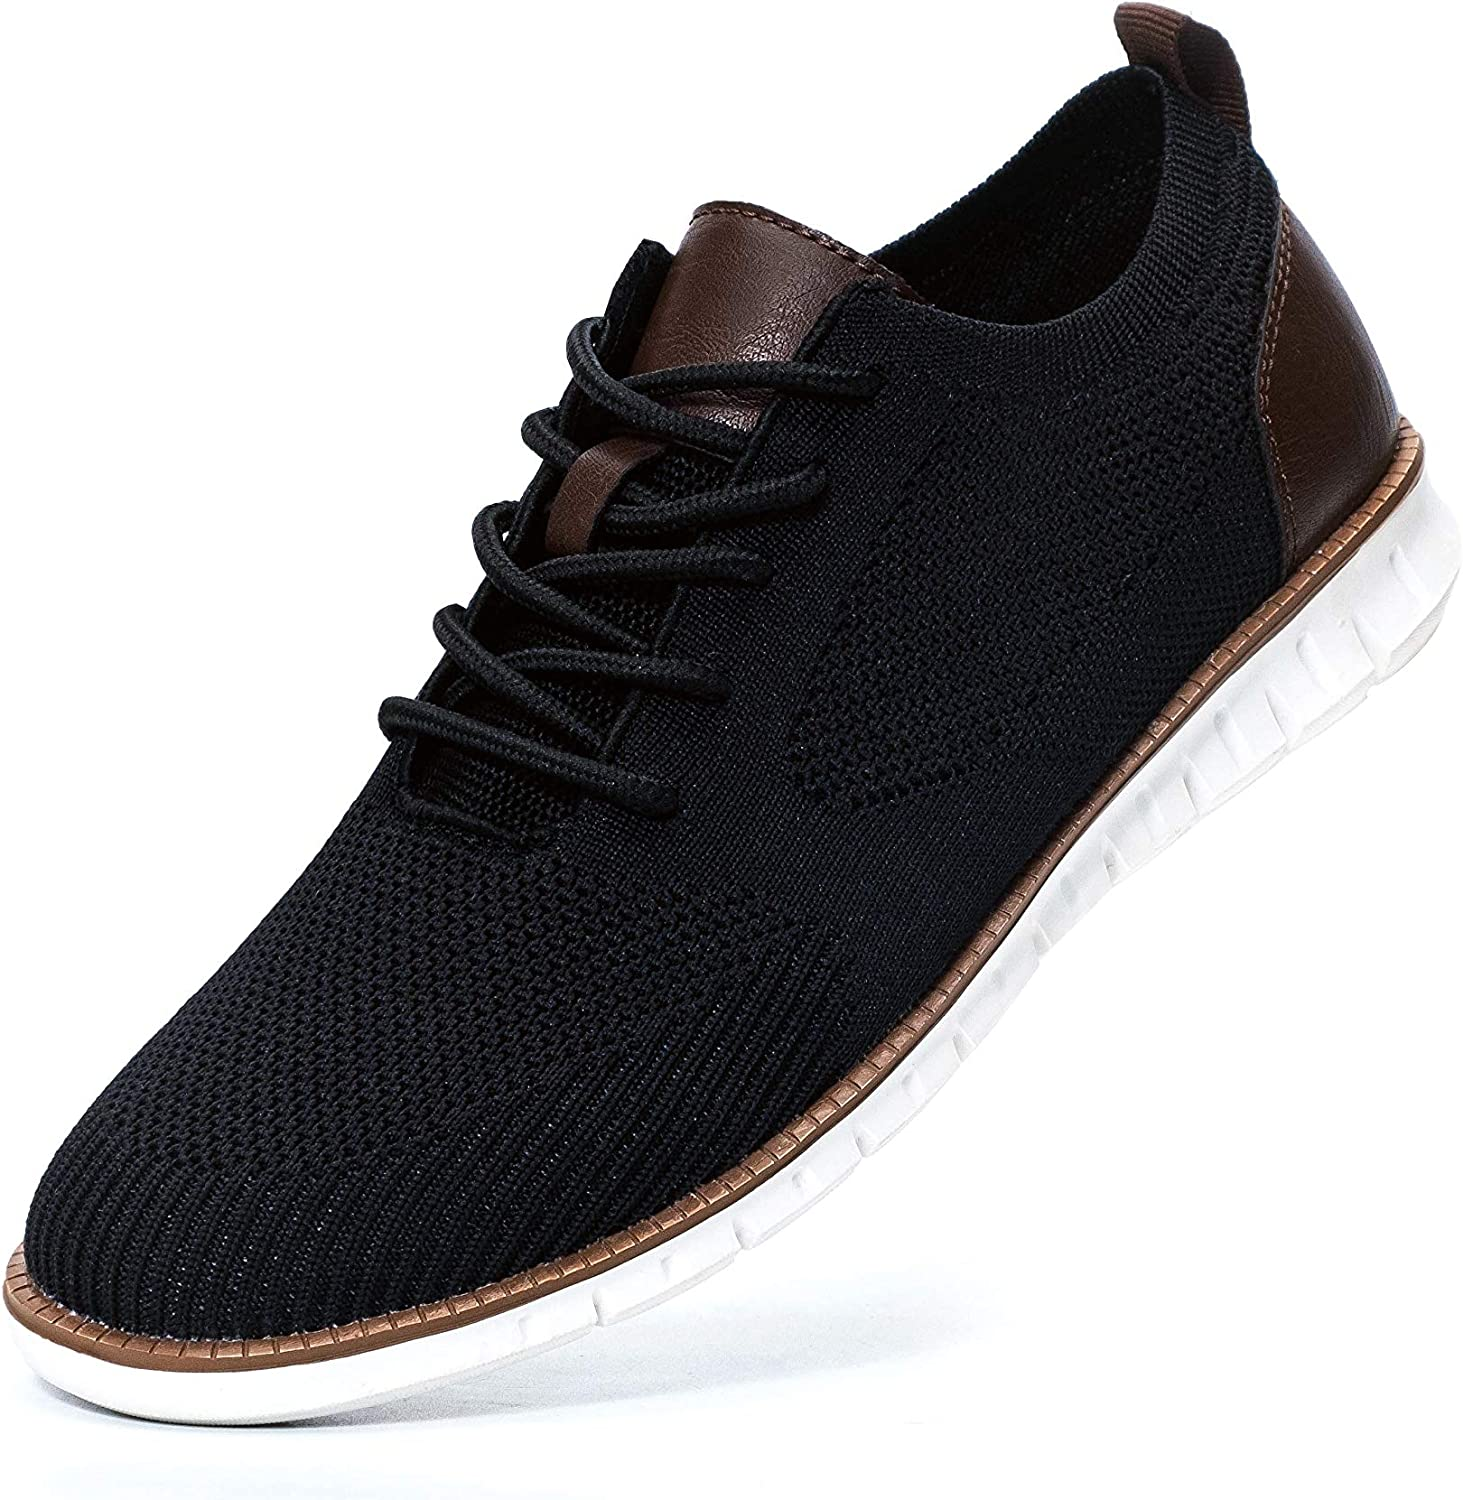 Men/'s Oxford Leather Casual Shoes Outdoor Lace Up Sneakers Breathable Work Shoes